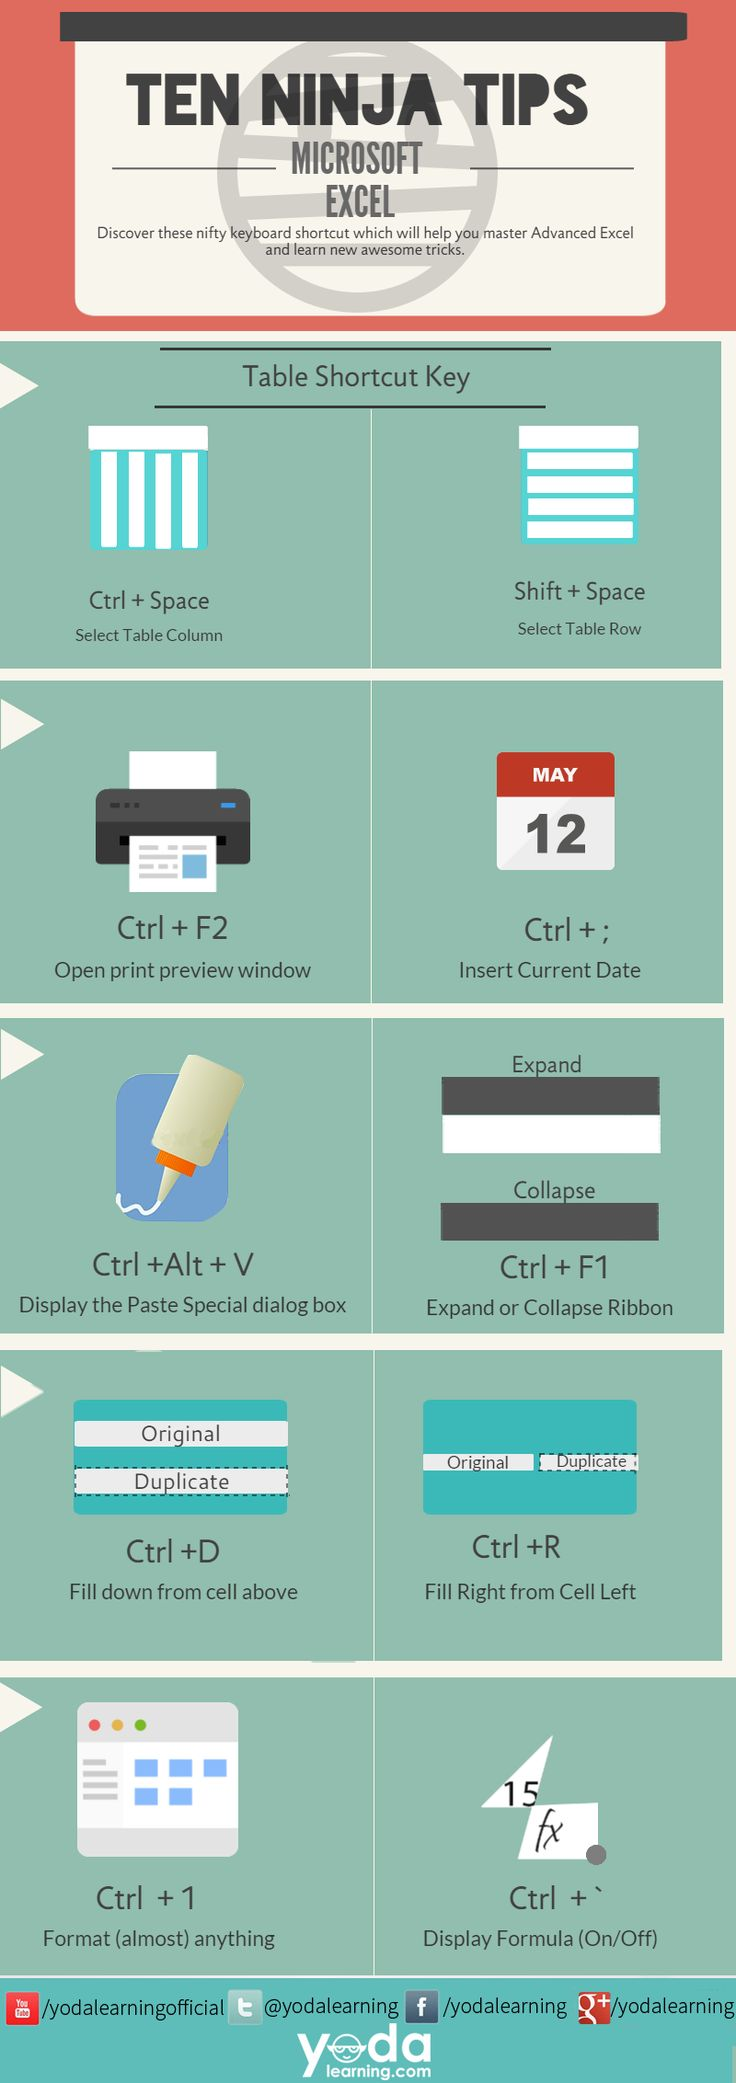 Top 10 keyboard shortcuts for Microsoft Excel #Top #tips #tricks #excel #microsoft #microsoft #shorcuts #infographics